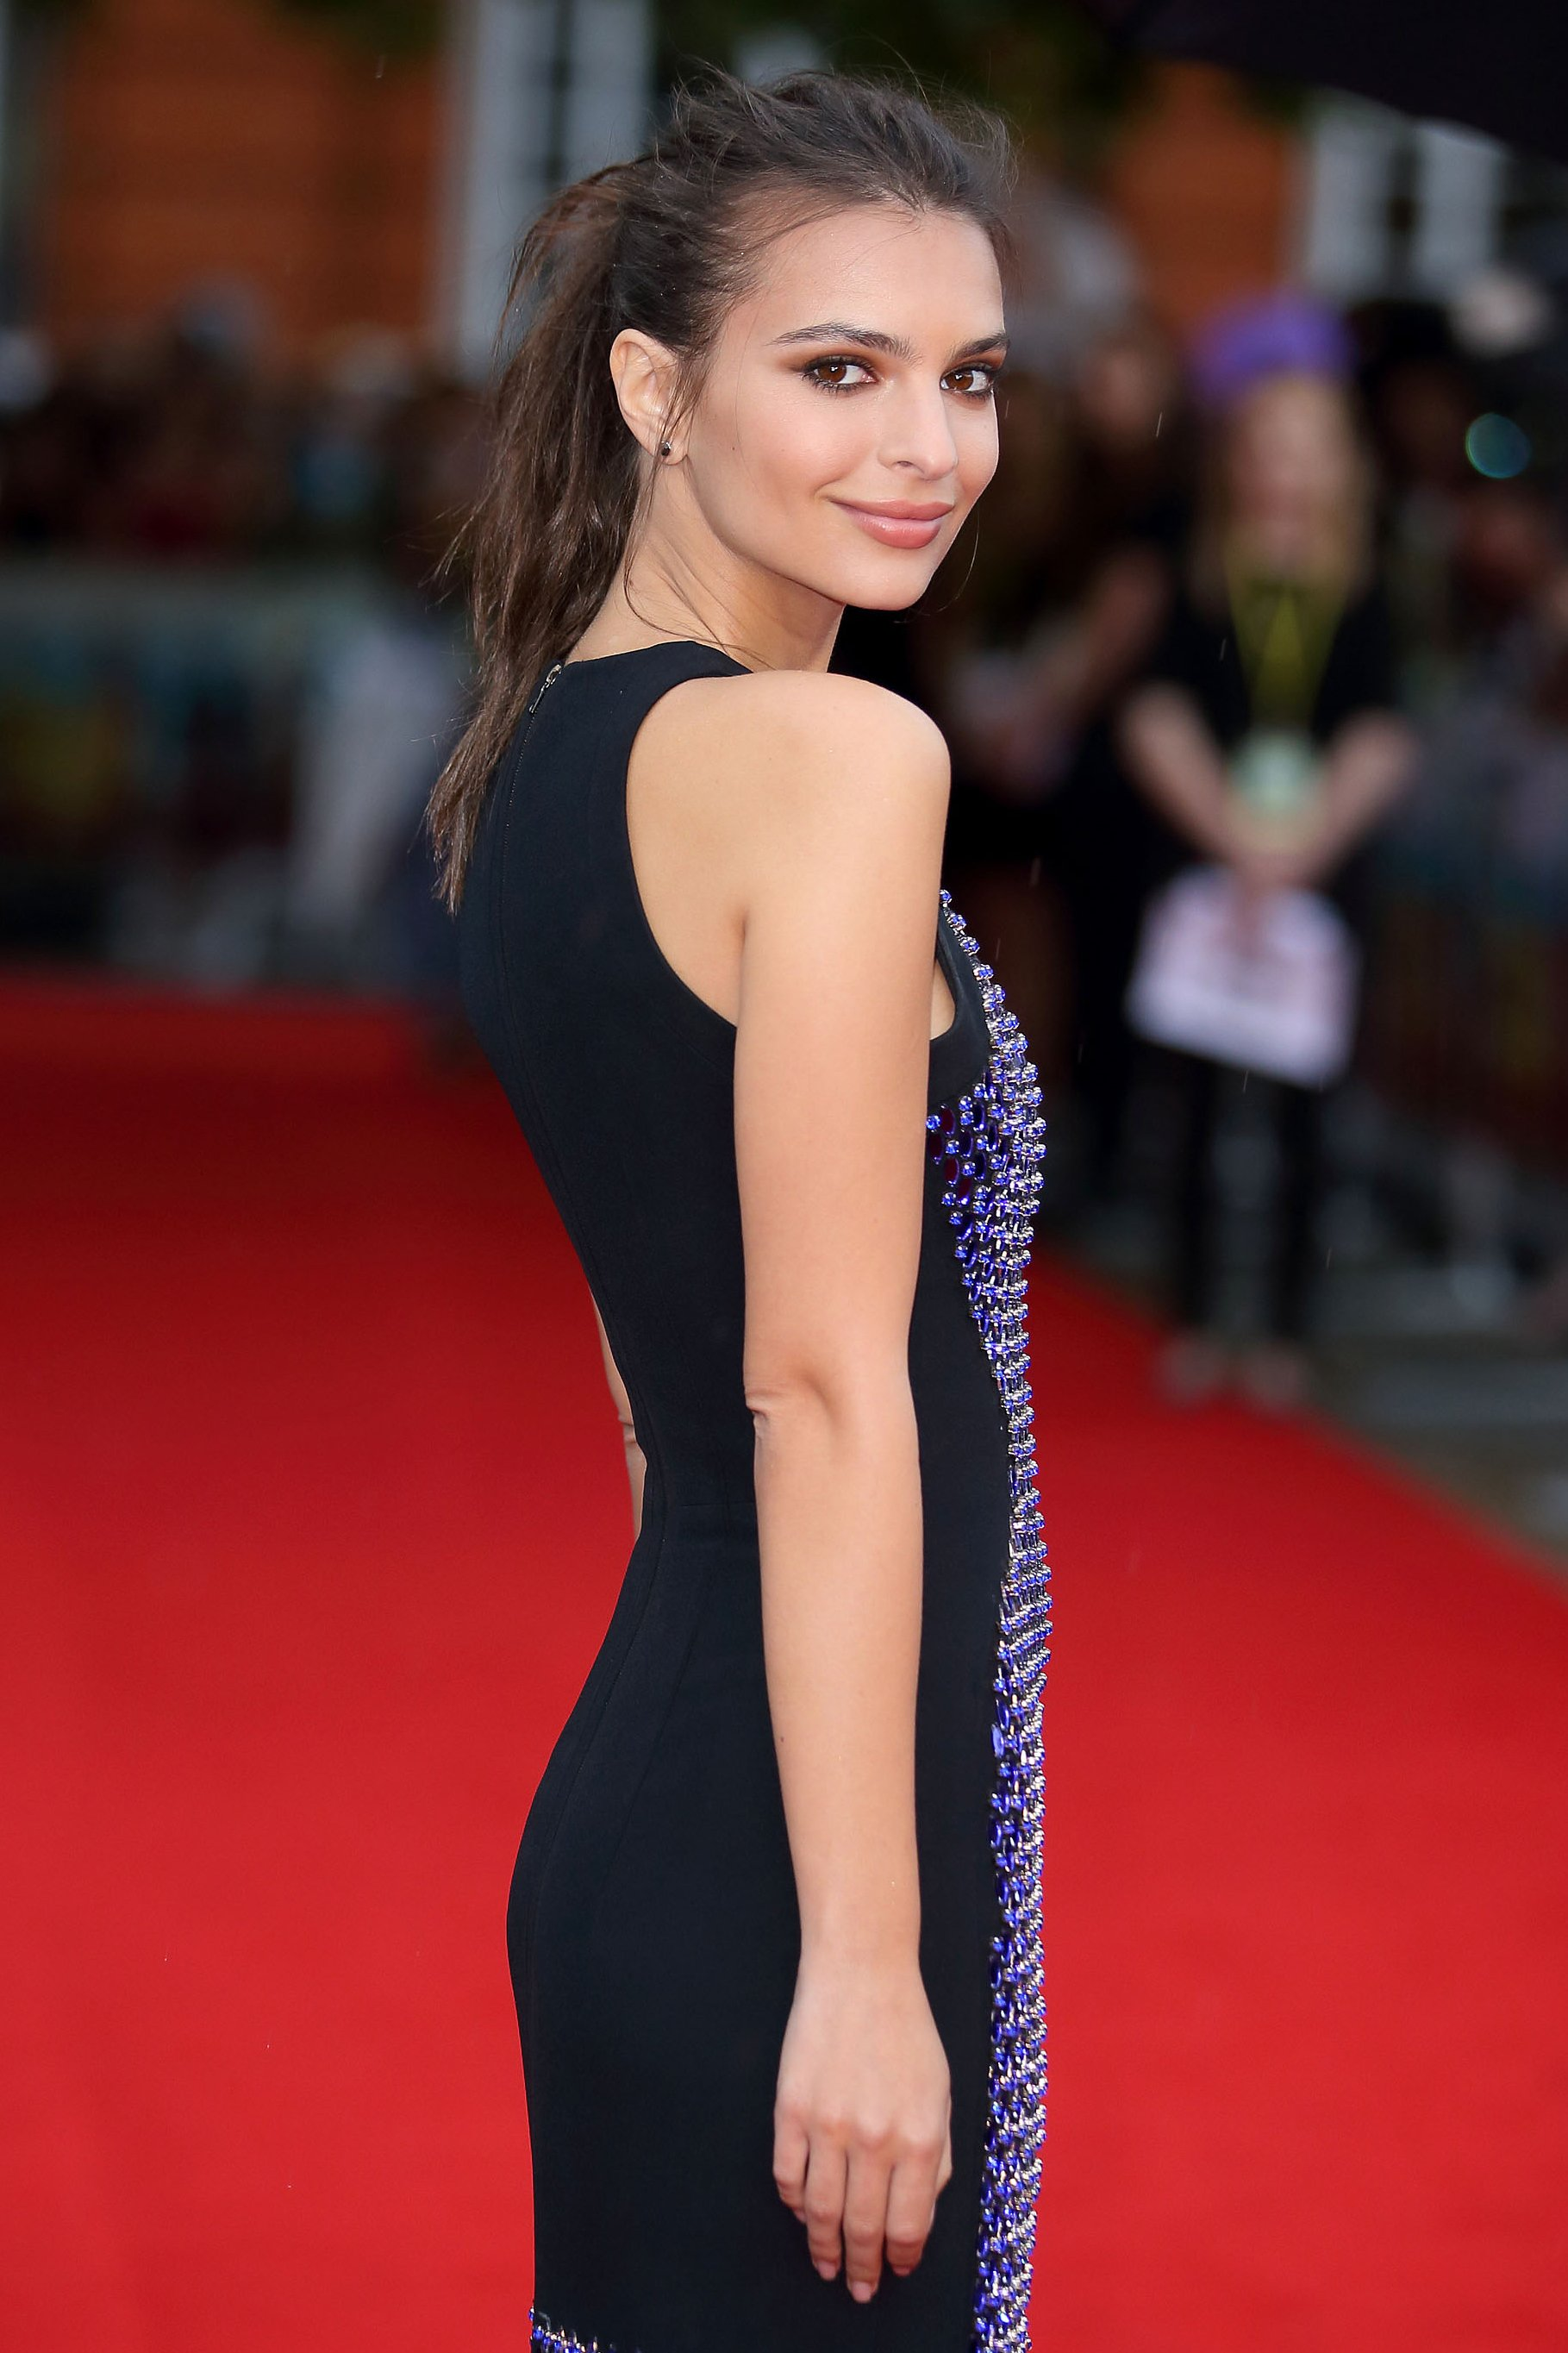 Emily Ratajkowski Wallpapers hd